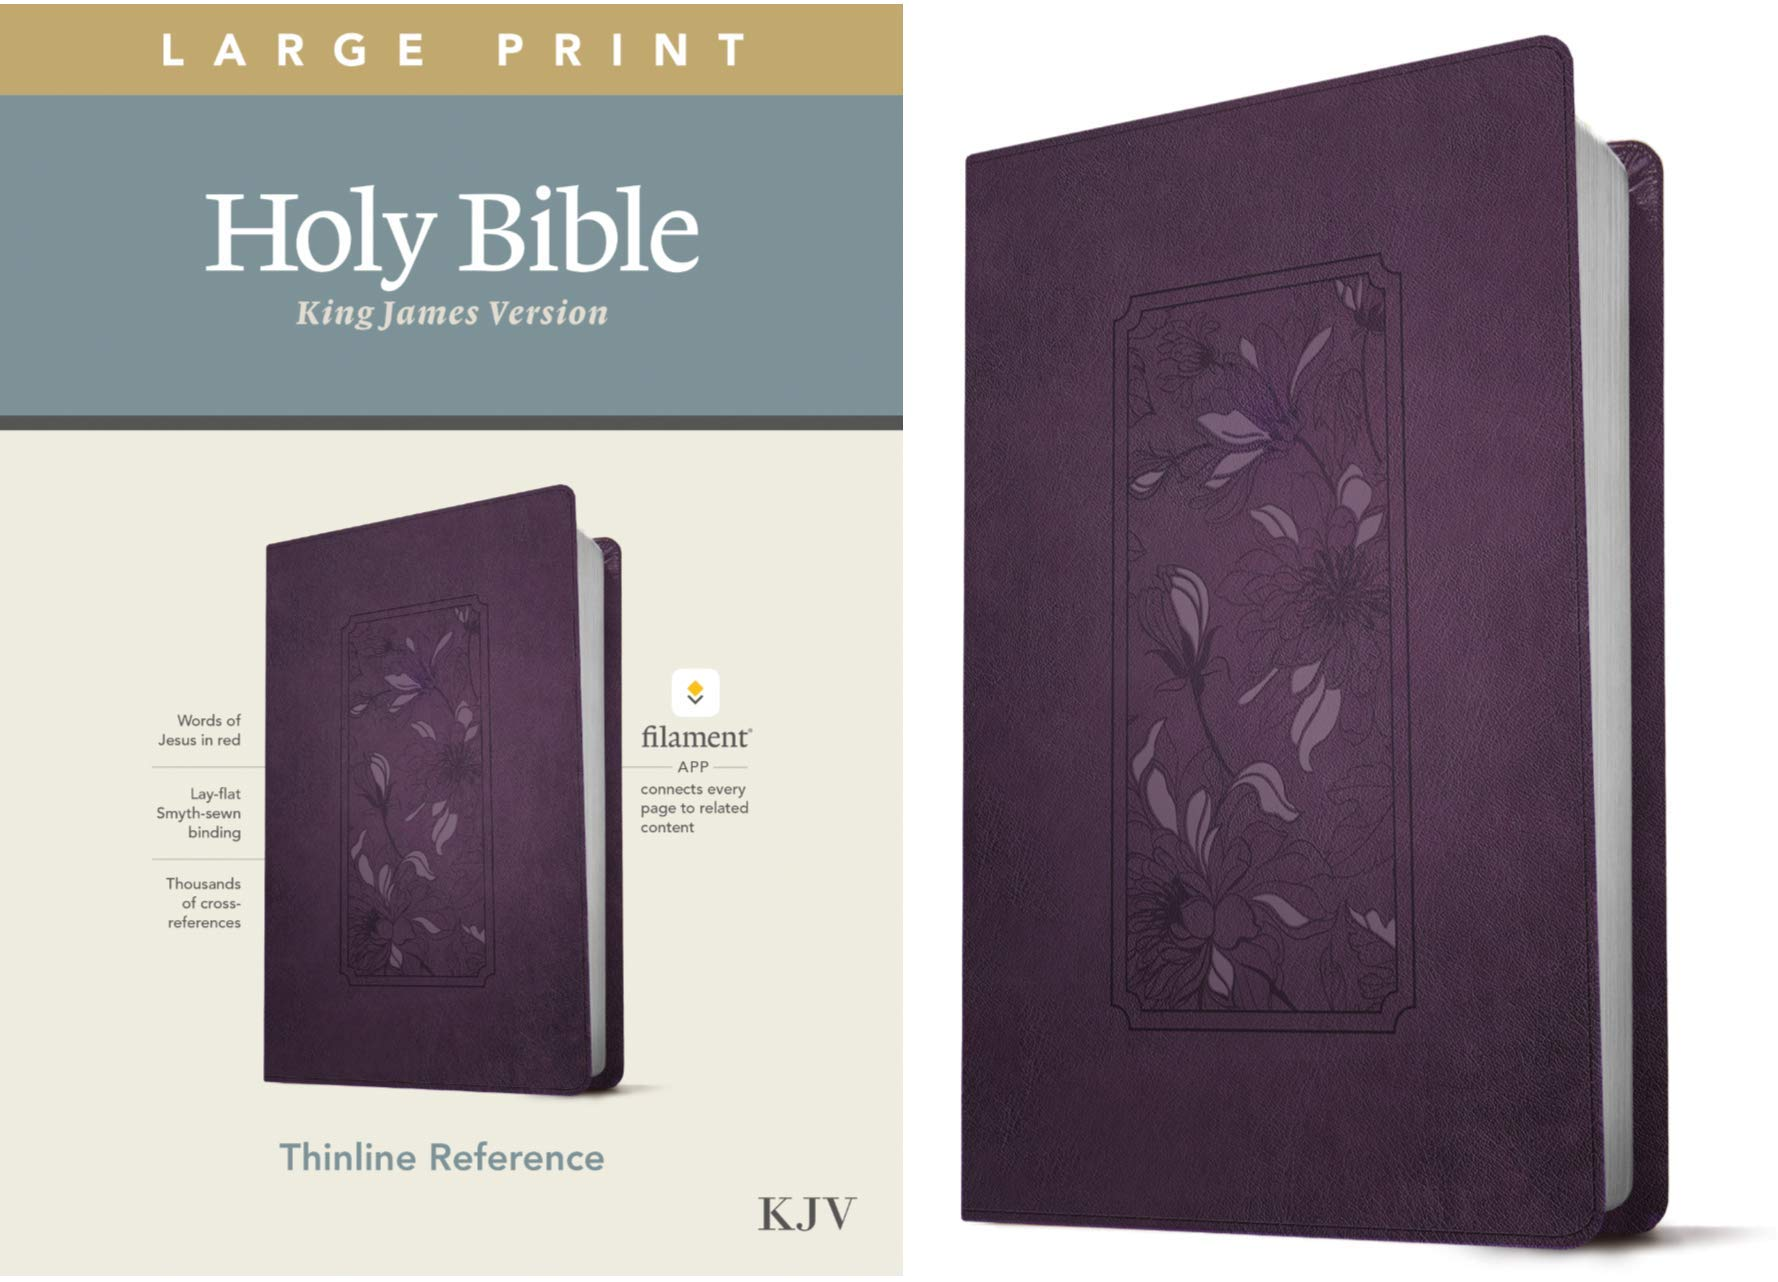 Kjv Large Print Thinline Reference Holy Bible Red Letter Leatherlike Floral Frame Purple Includes Free Access To The Filament Bible App Notes Devotionals Worship Music And Video Tyndale 9781496447180 Amazon Com Books